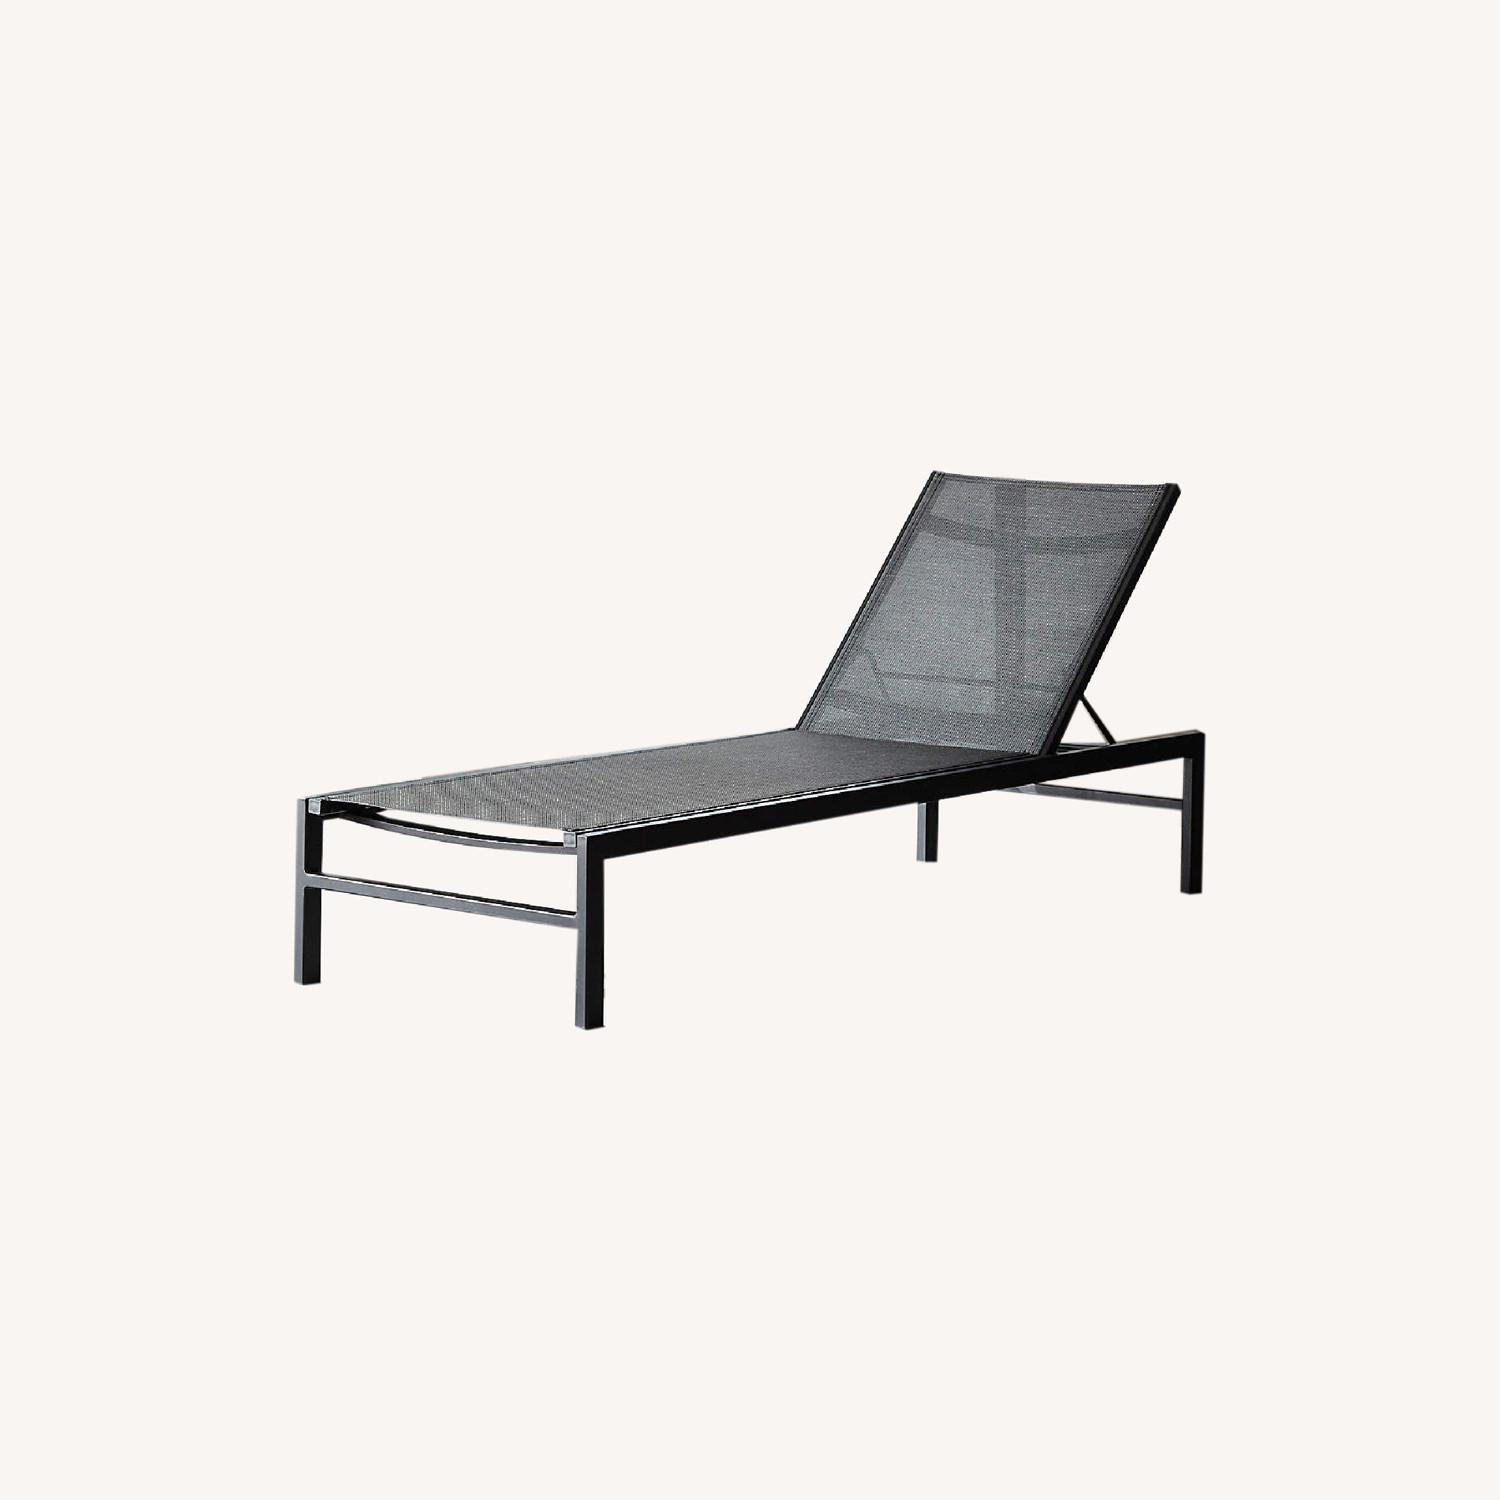 CB2 Black Outdoor Lounge Chair - image-0